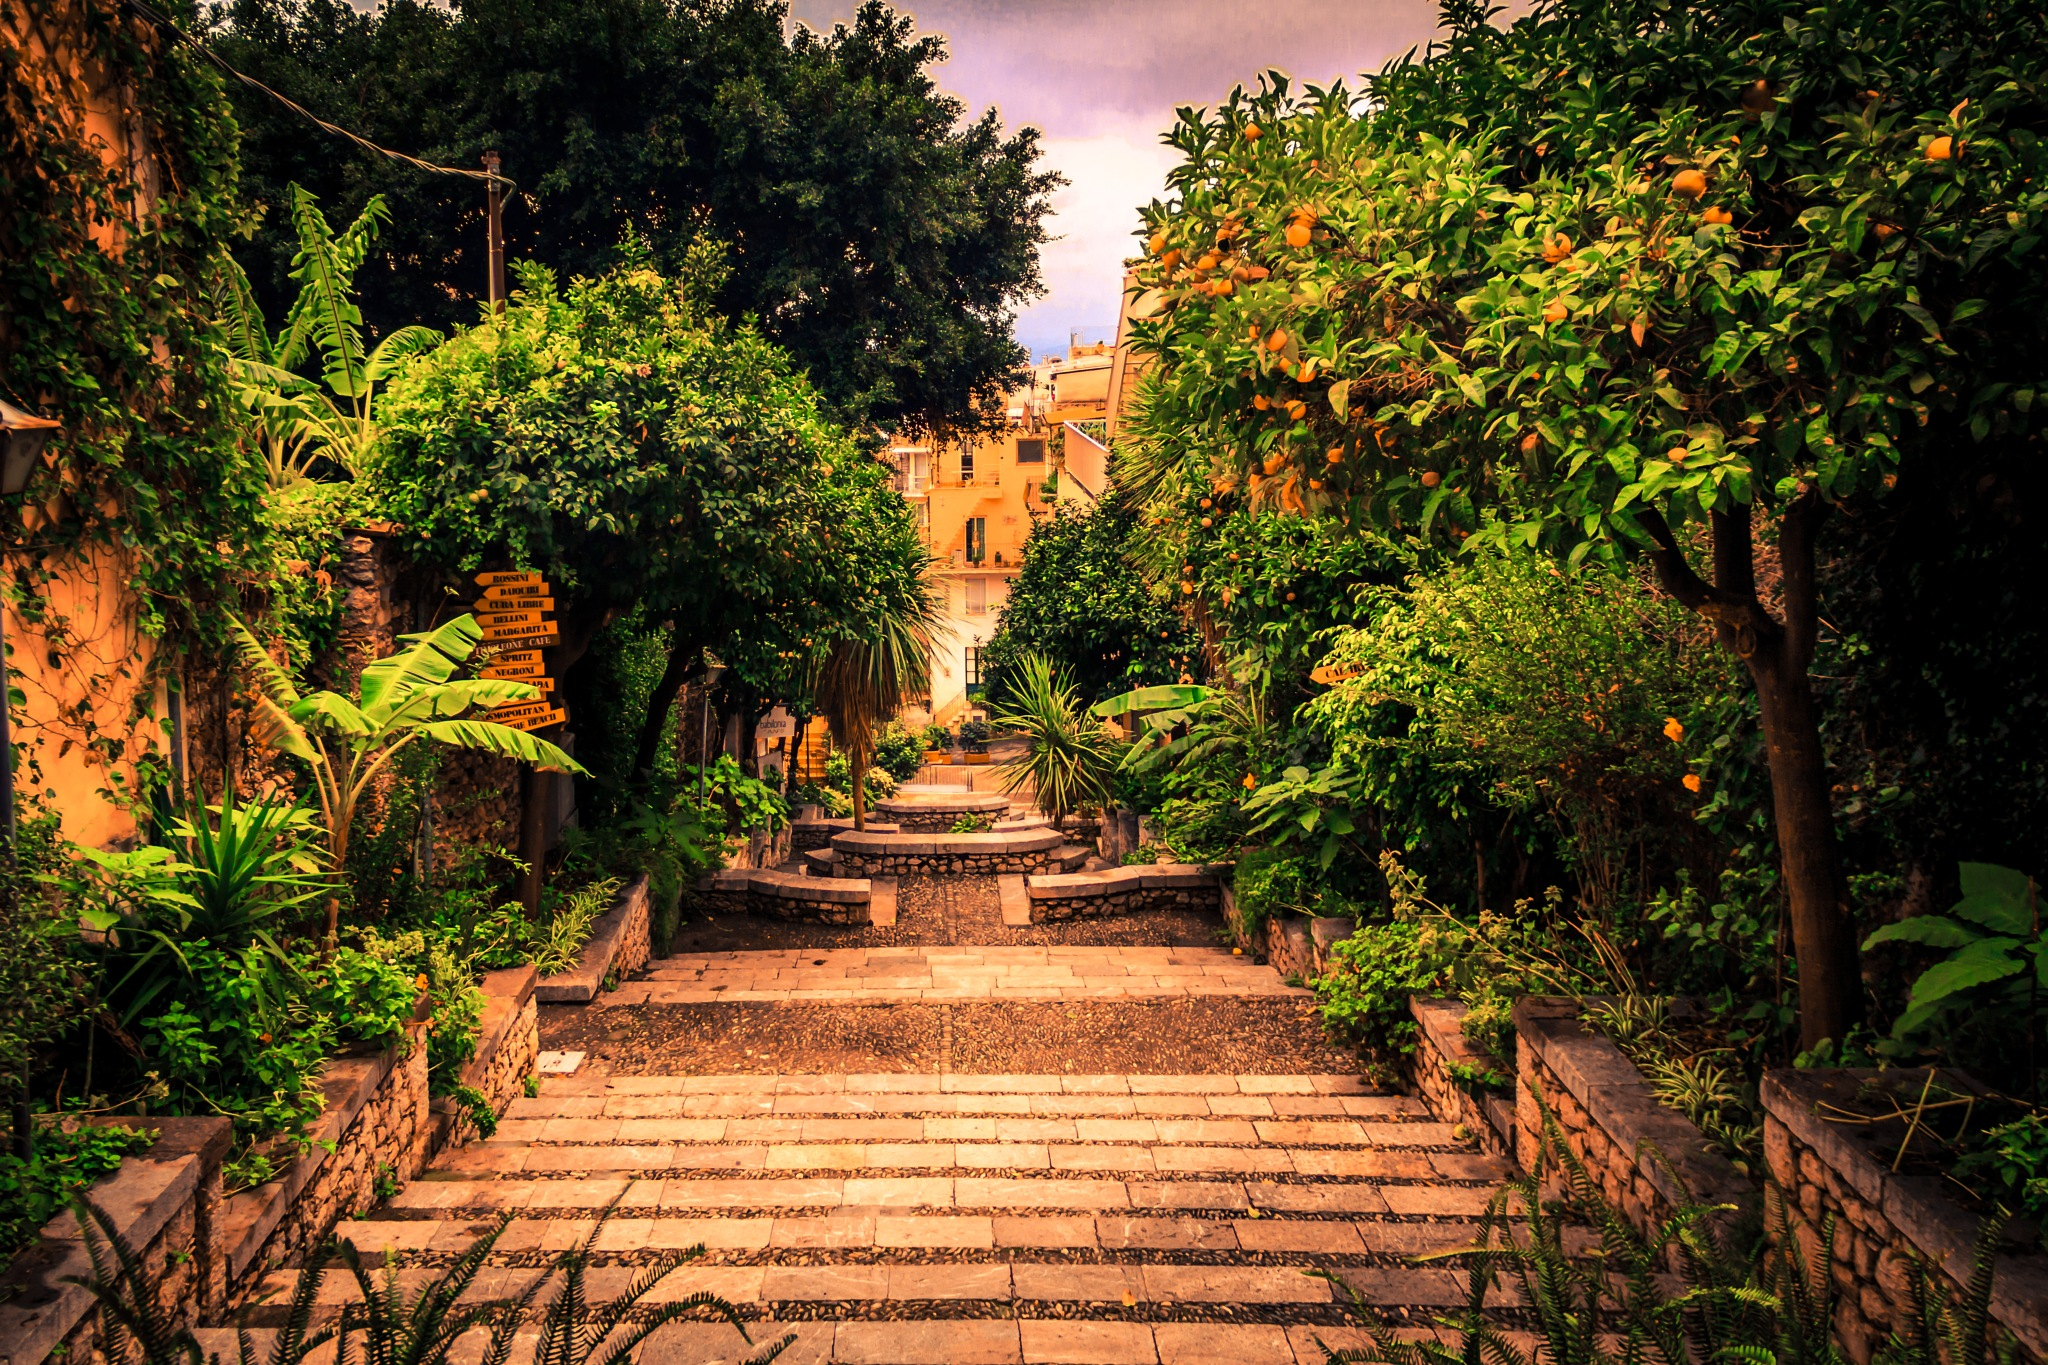 Stairs of Taormina I by Fabio Rodrigues